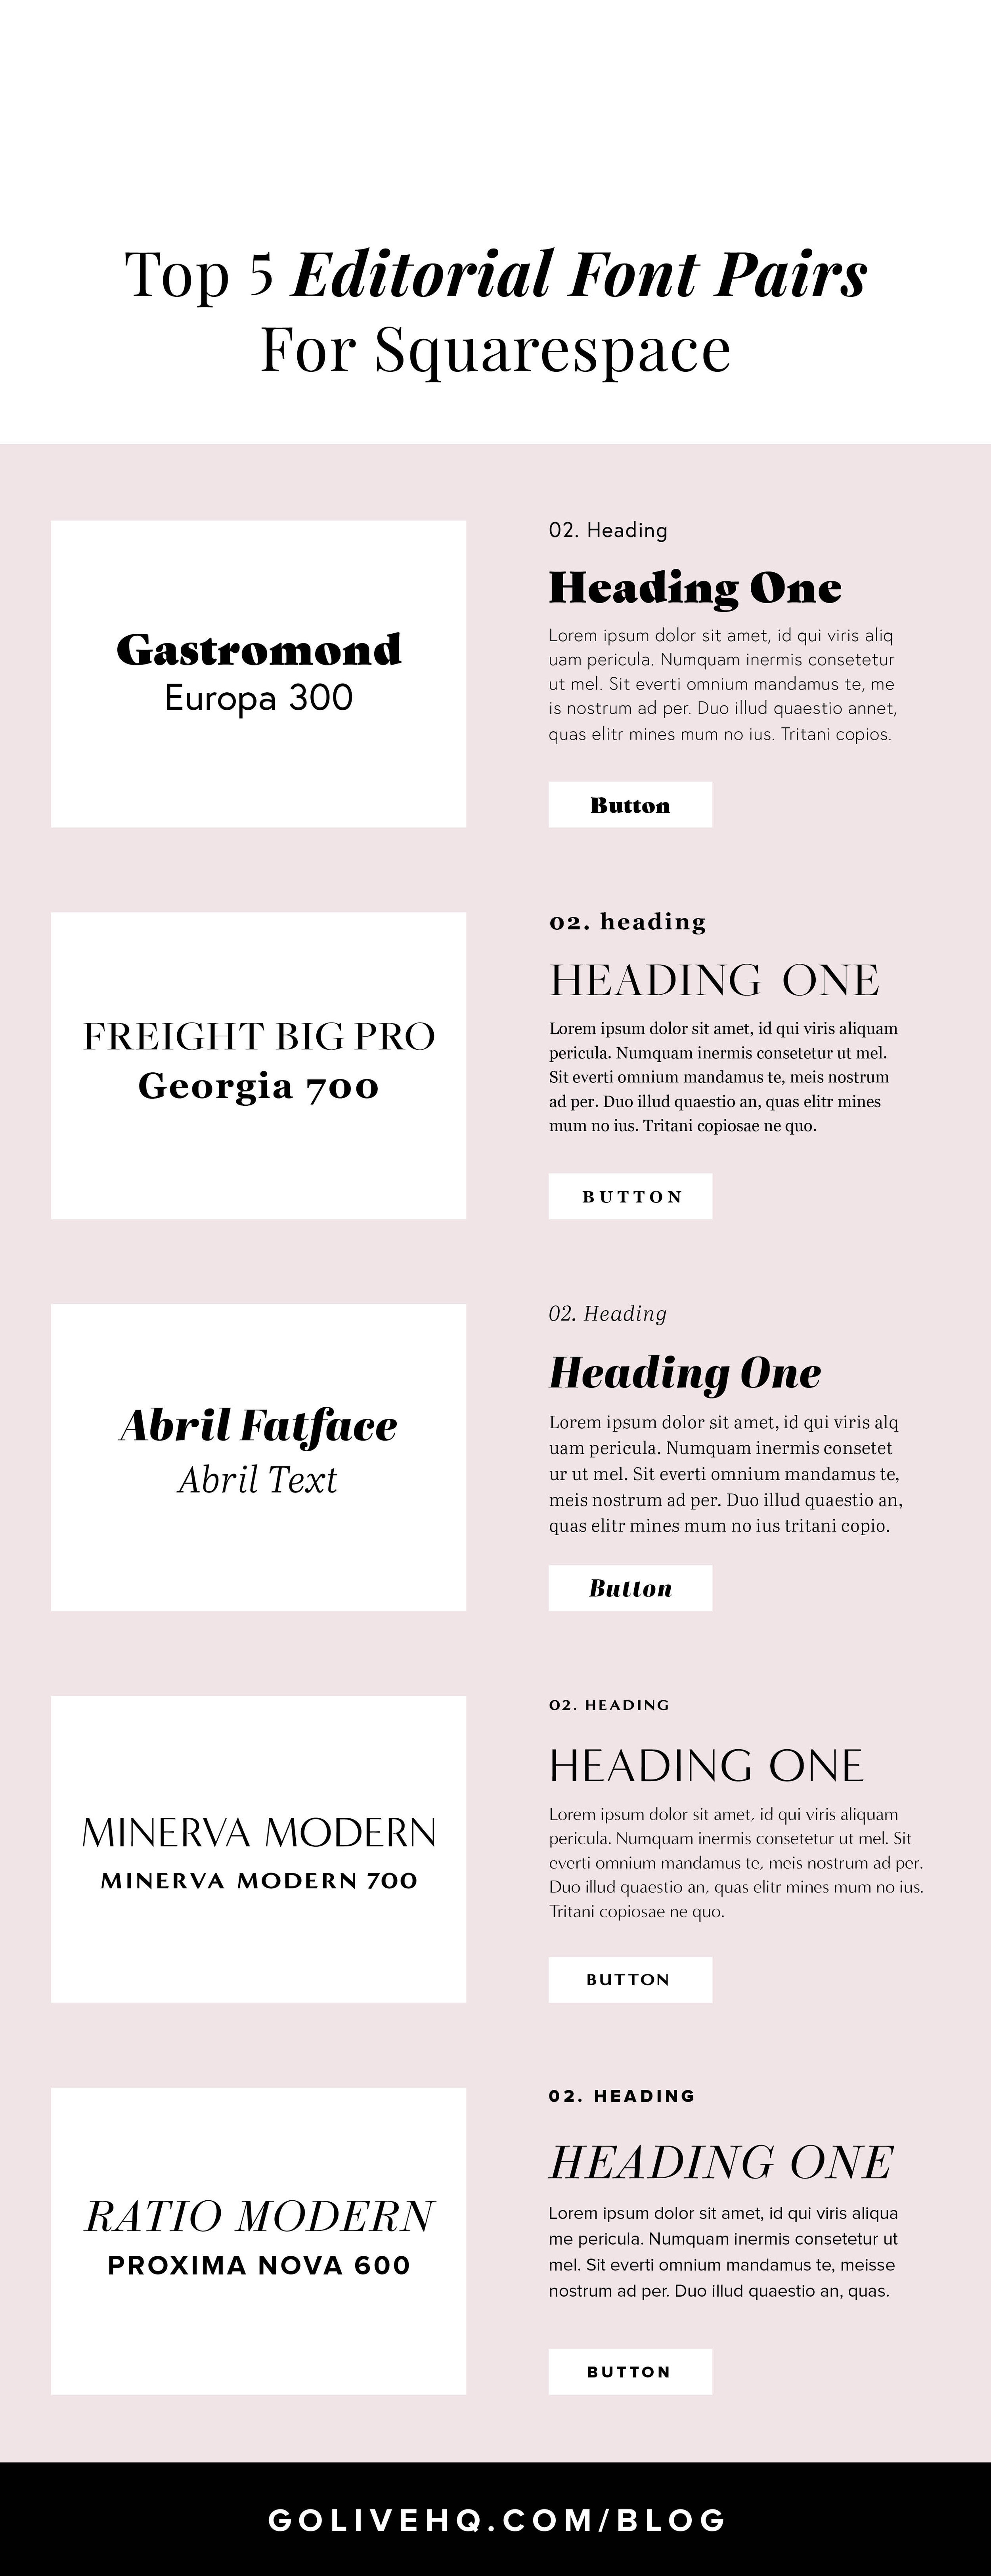 Top 5 Editorial Fonts For Squarespace | By Go Live HQ